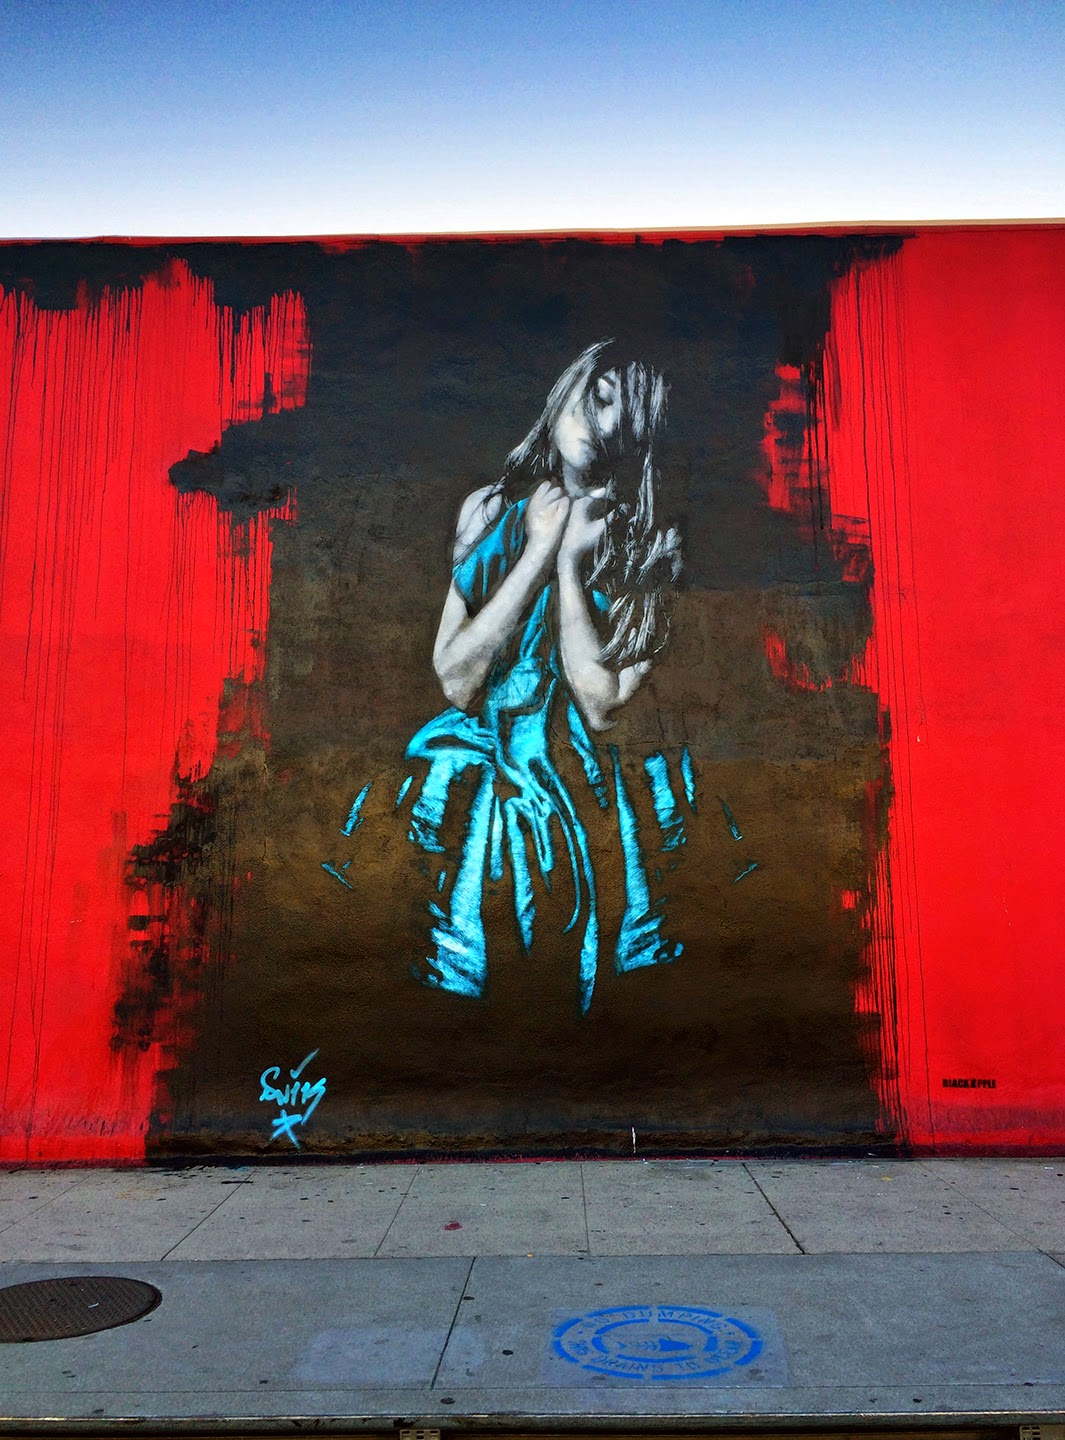 Our friends Snik are currently in North America where he was invited by Black Apple Art Gallery to paint on the streets of Los Angeles, USA.